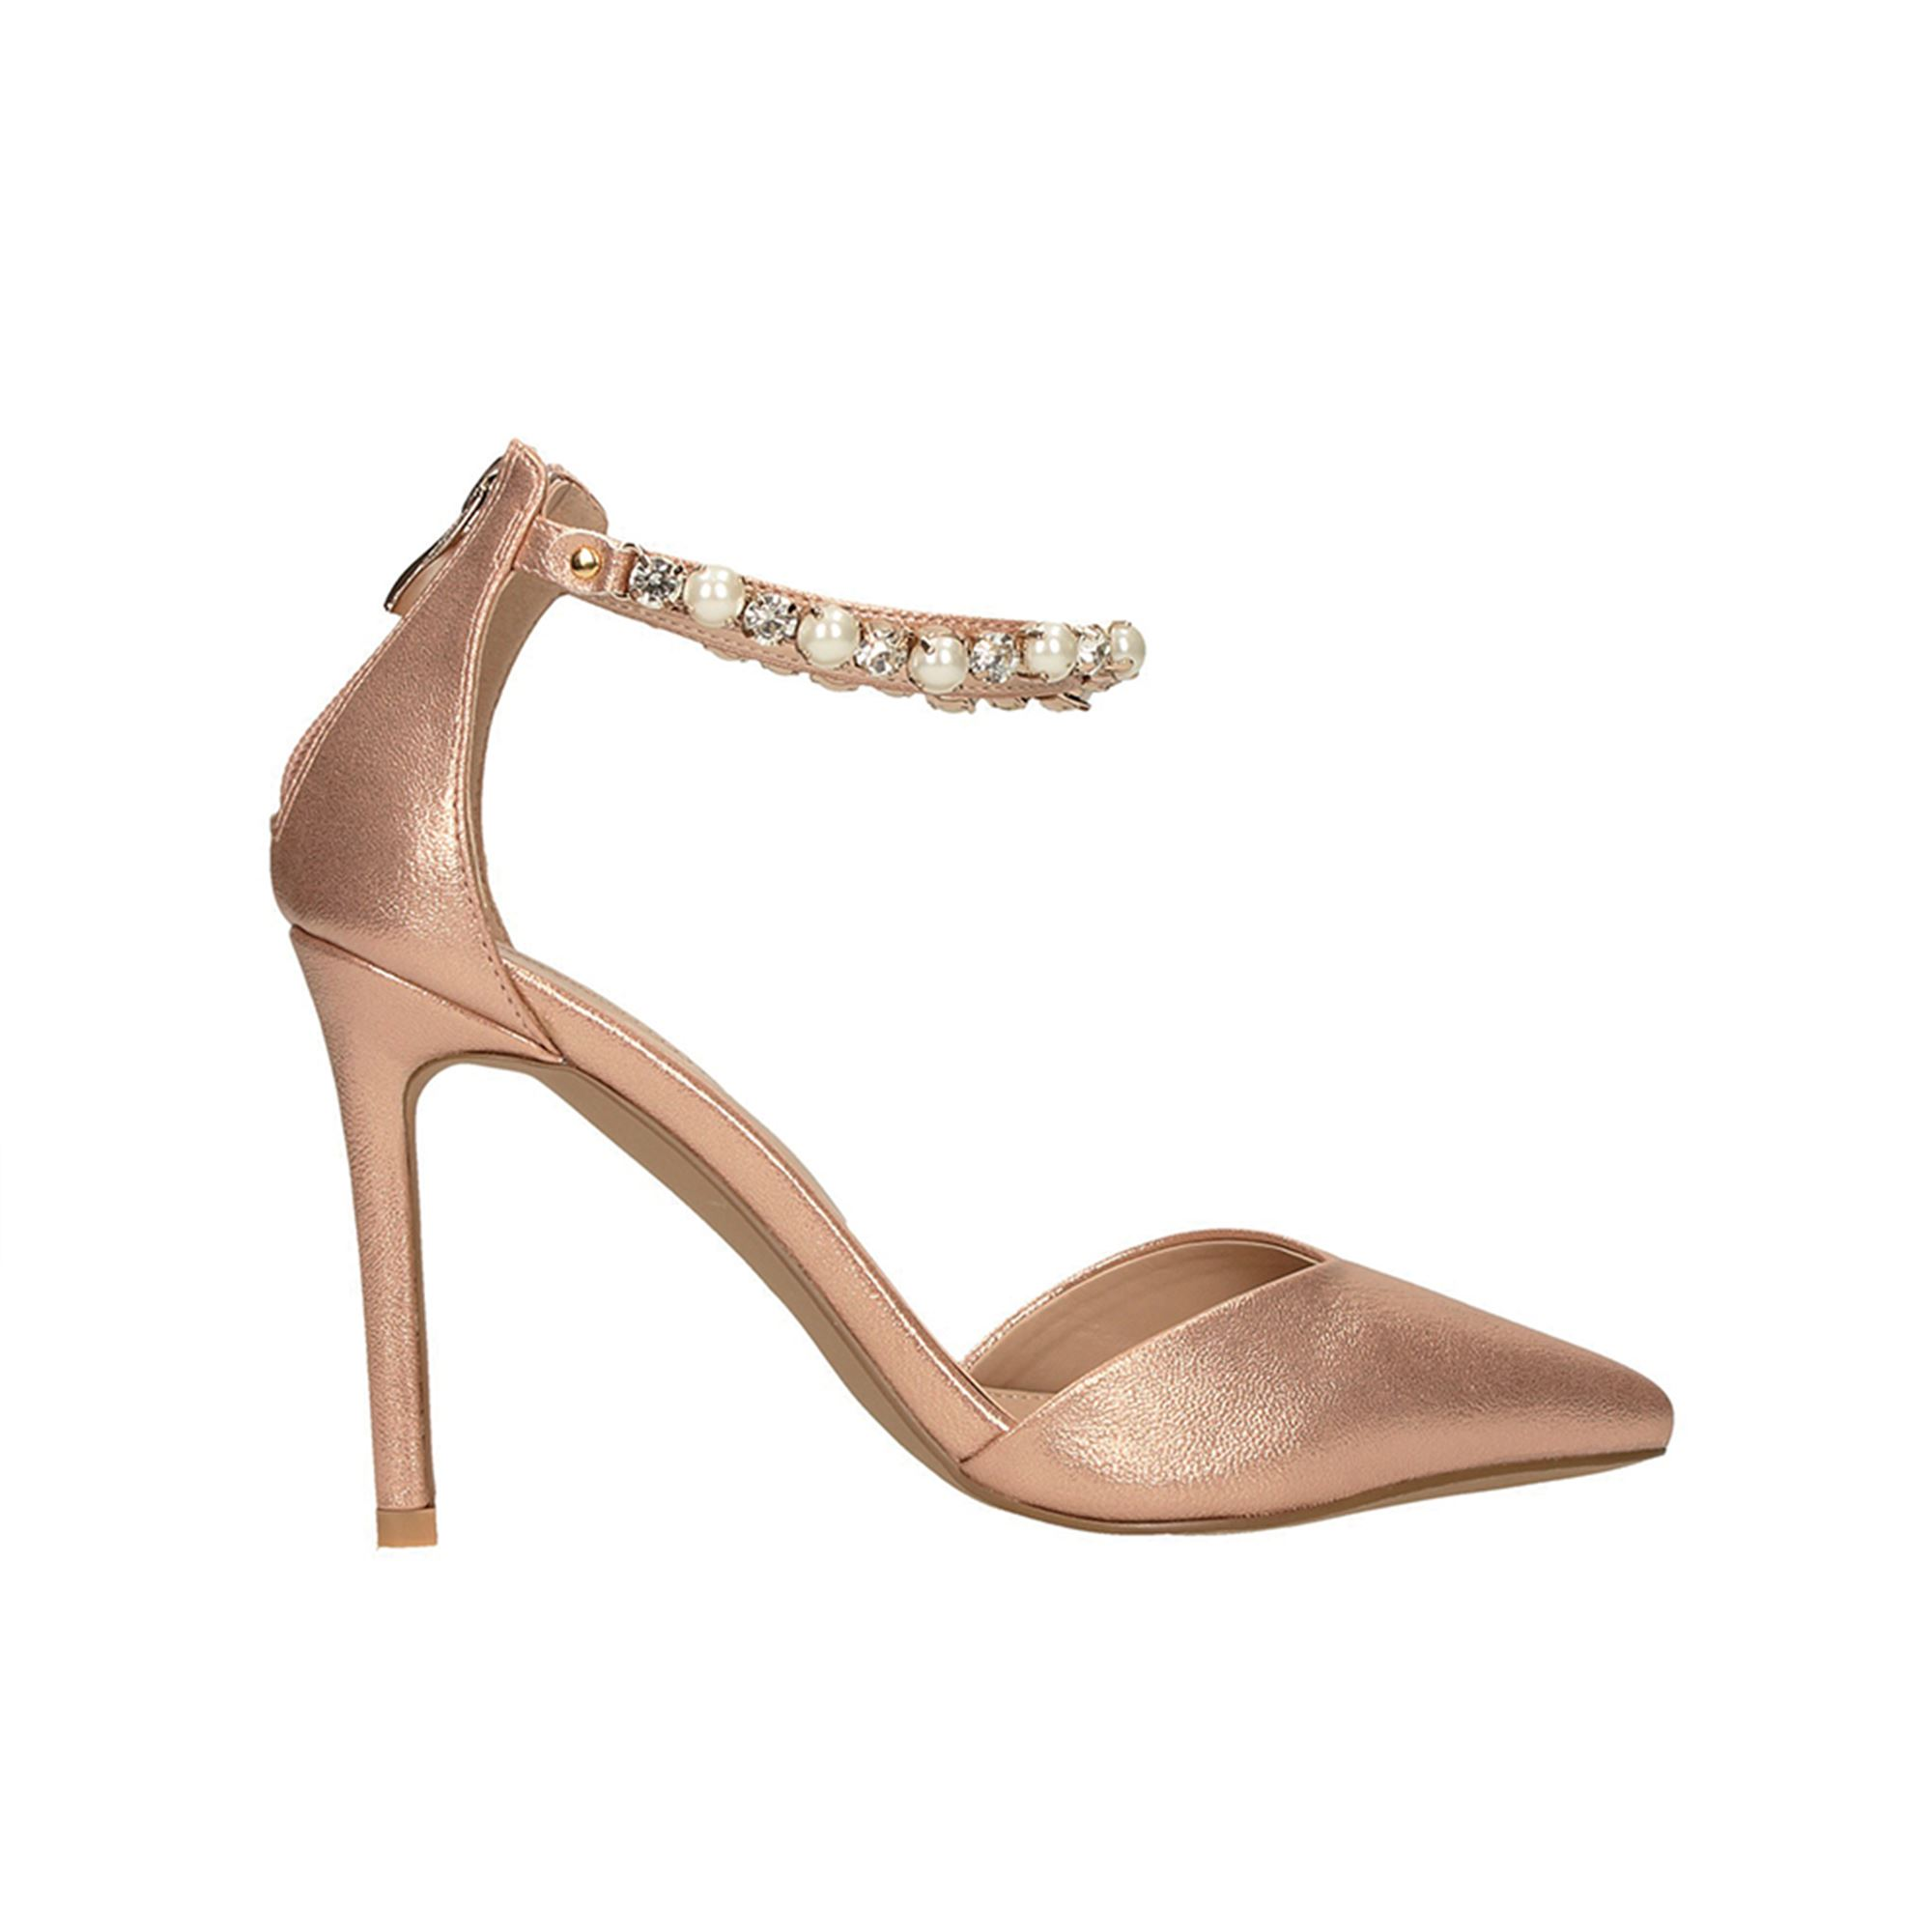 Tata Italia Shoes Woman Décolleté Rose/gold 9206A-15